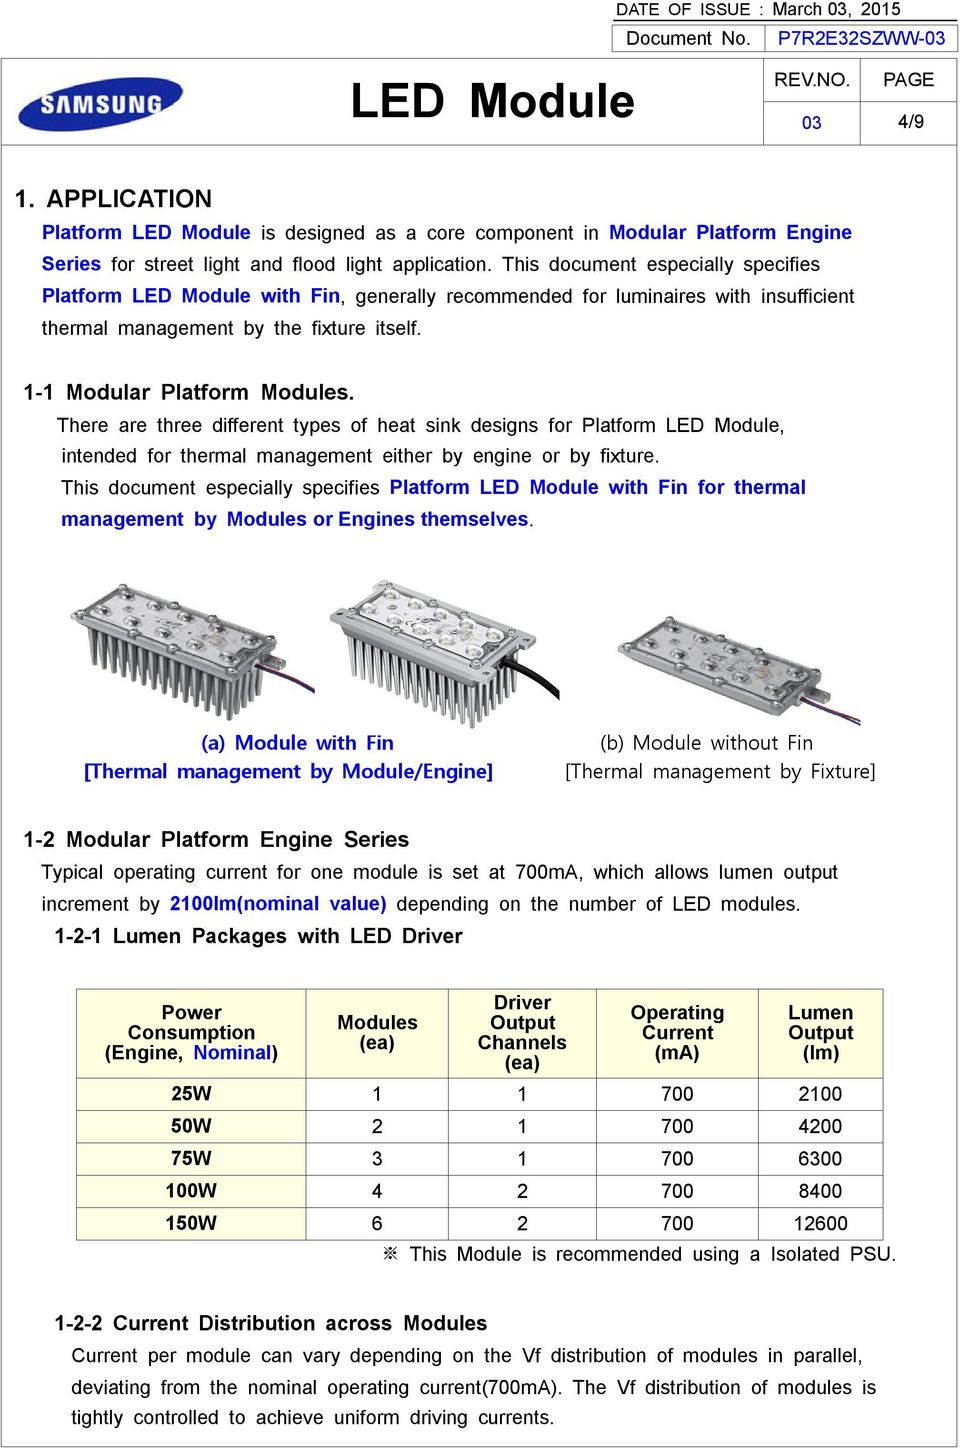 There are three different types of heat sink designs for Platform, intended for thermal management either by engine or by fixture.